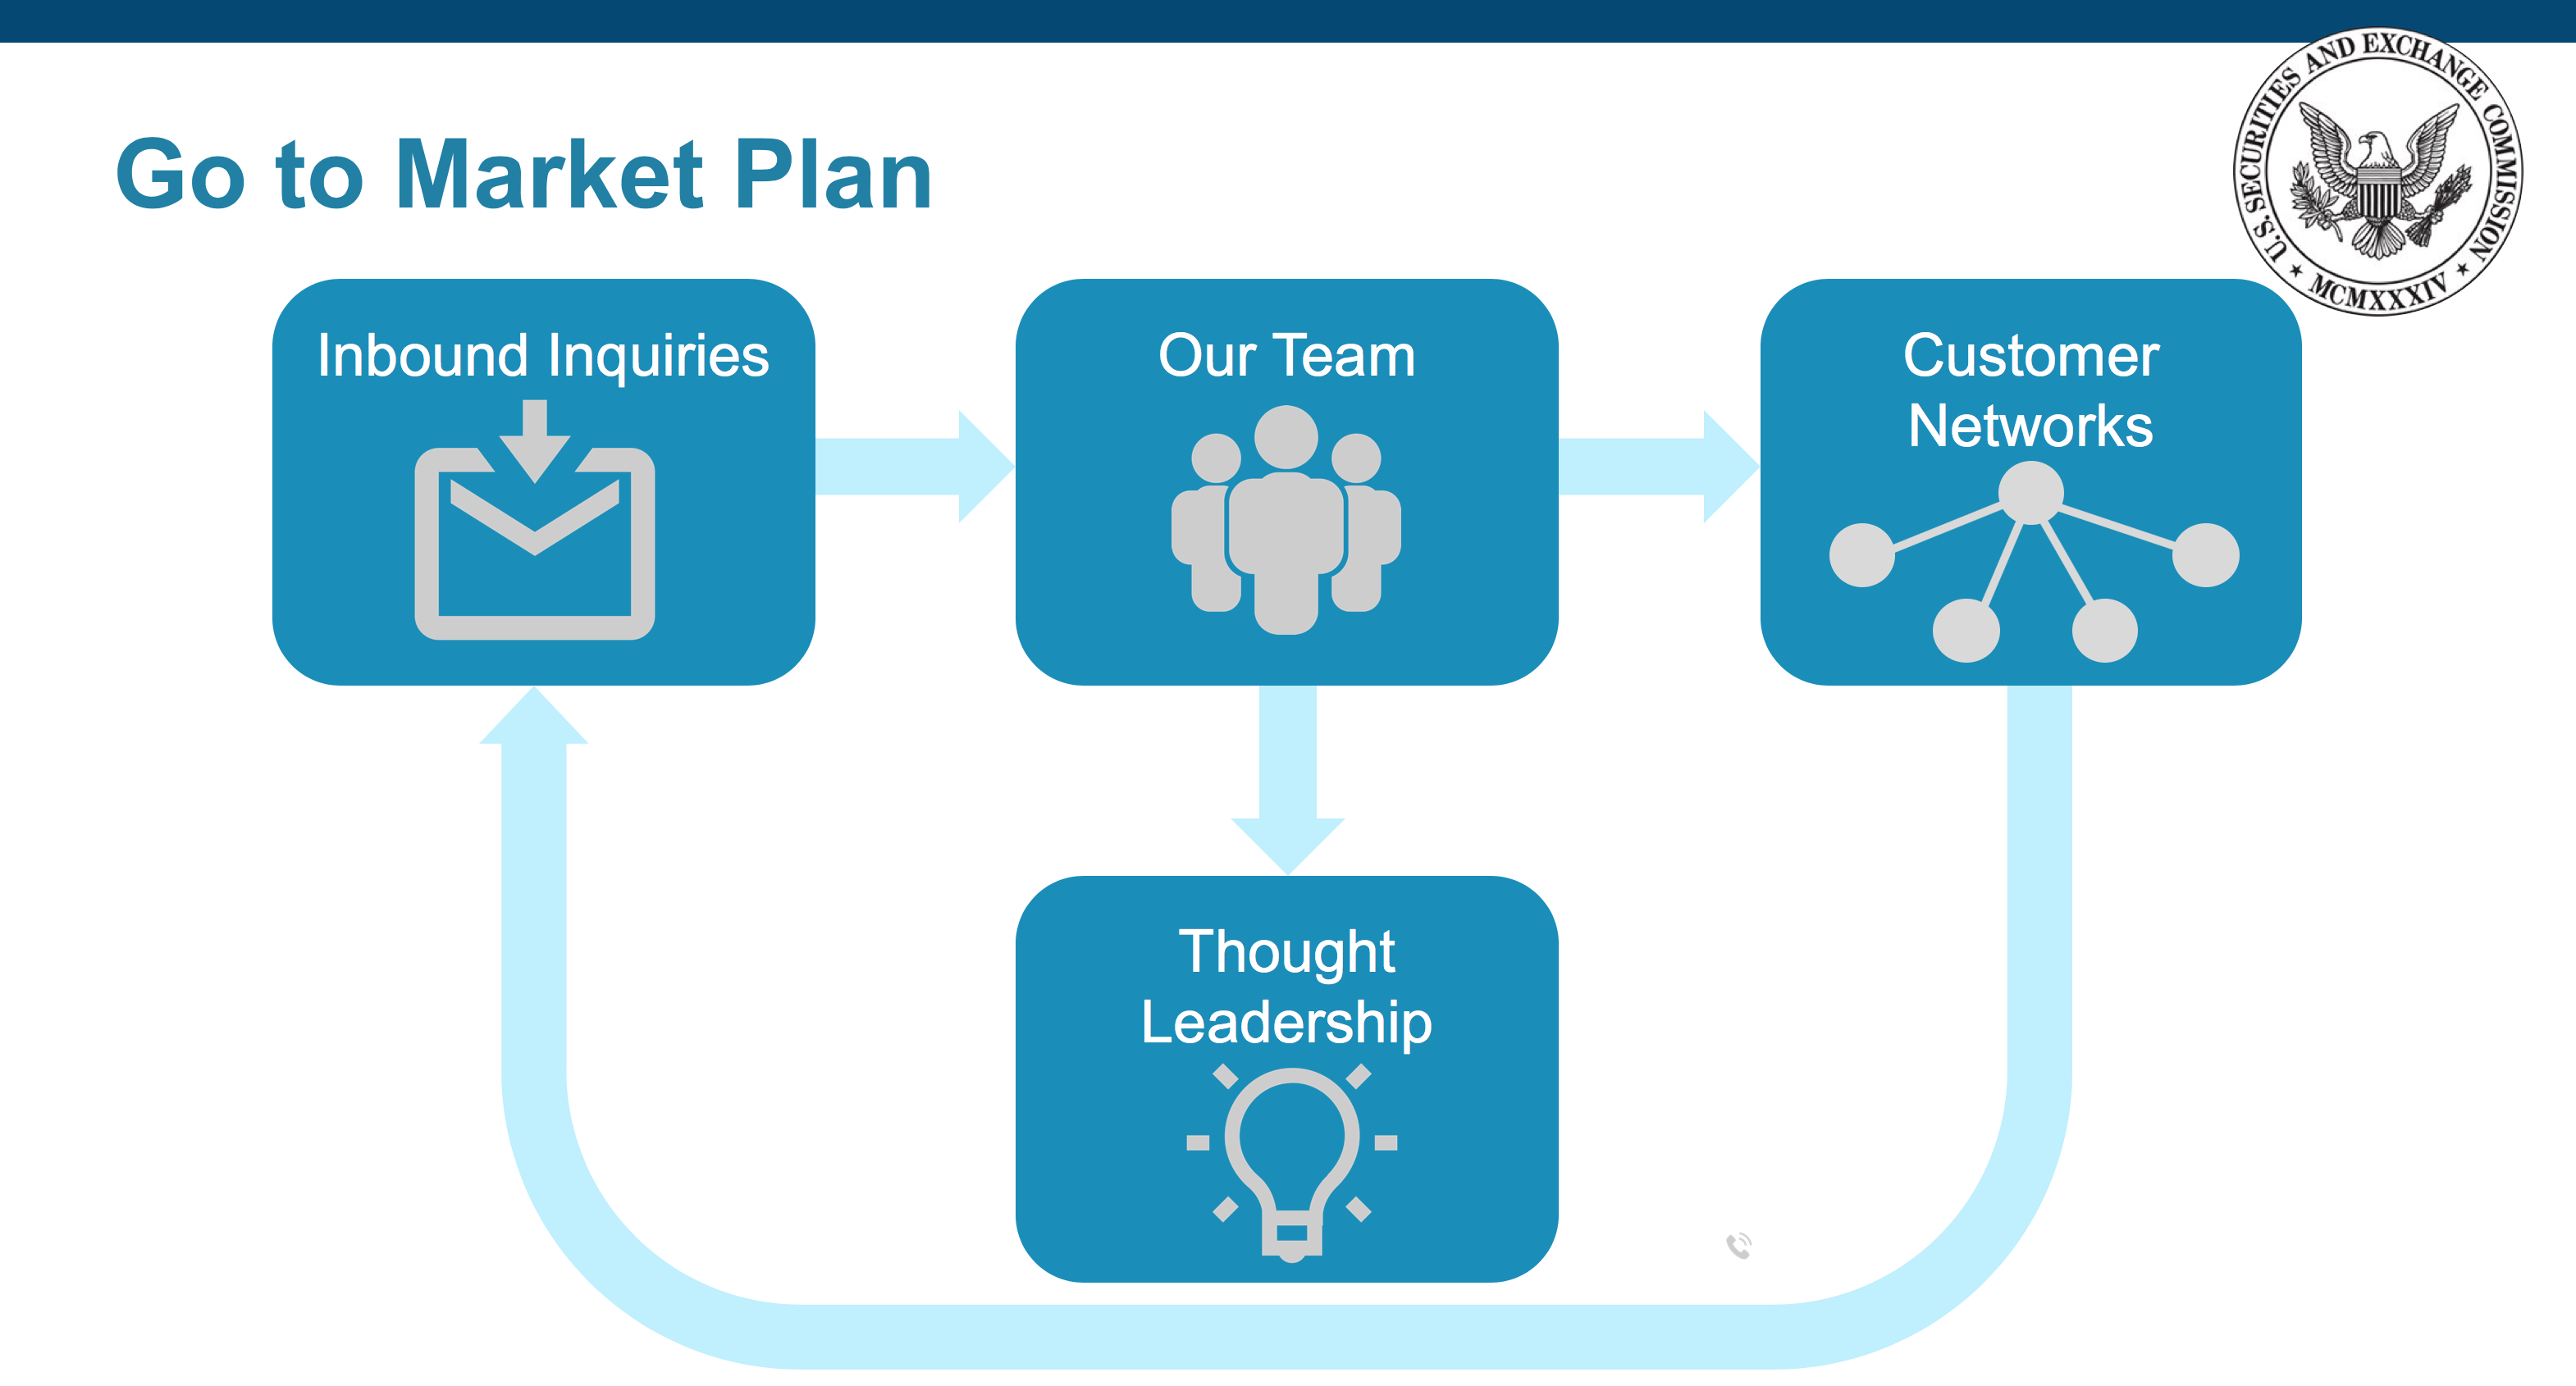 Go to Market Plan slide